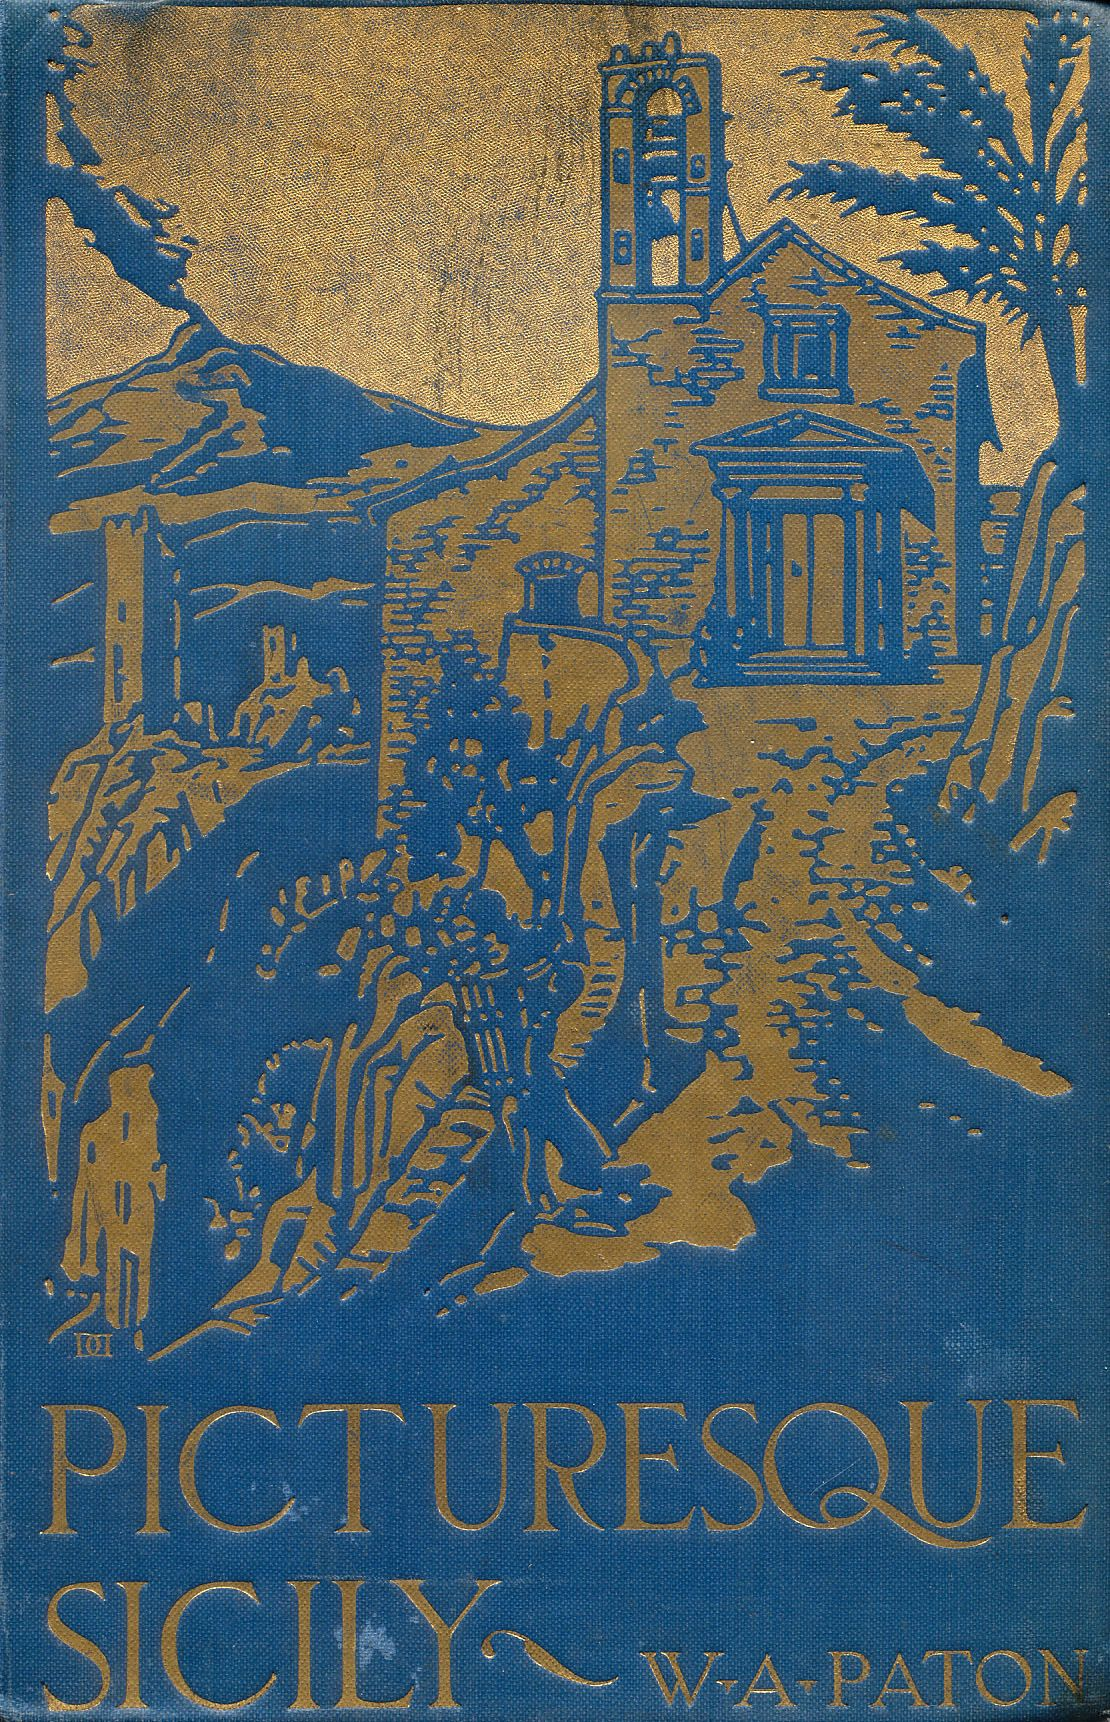 'Picturesque Sicily' by W.A. (William Agnew) Paton. Harper, New York, c 1897